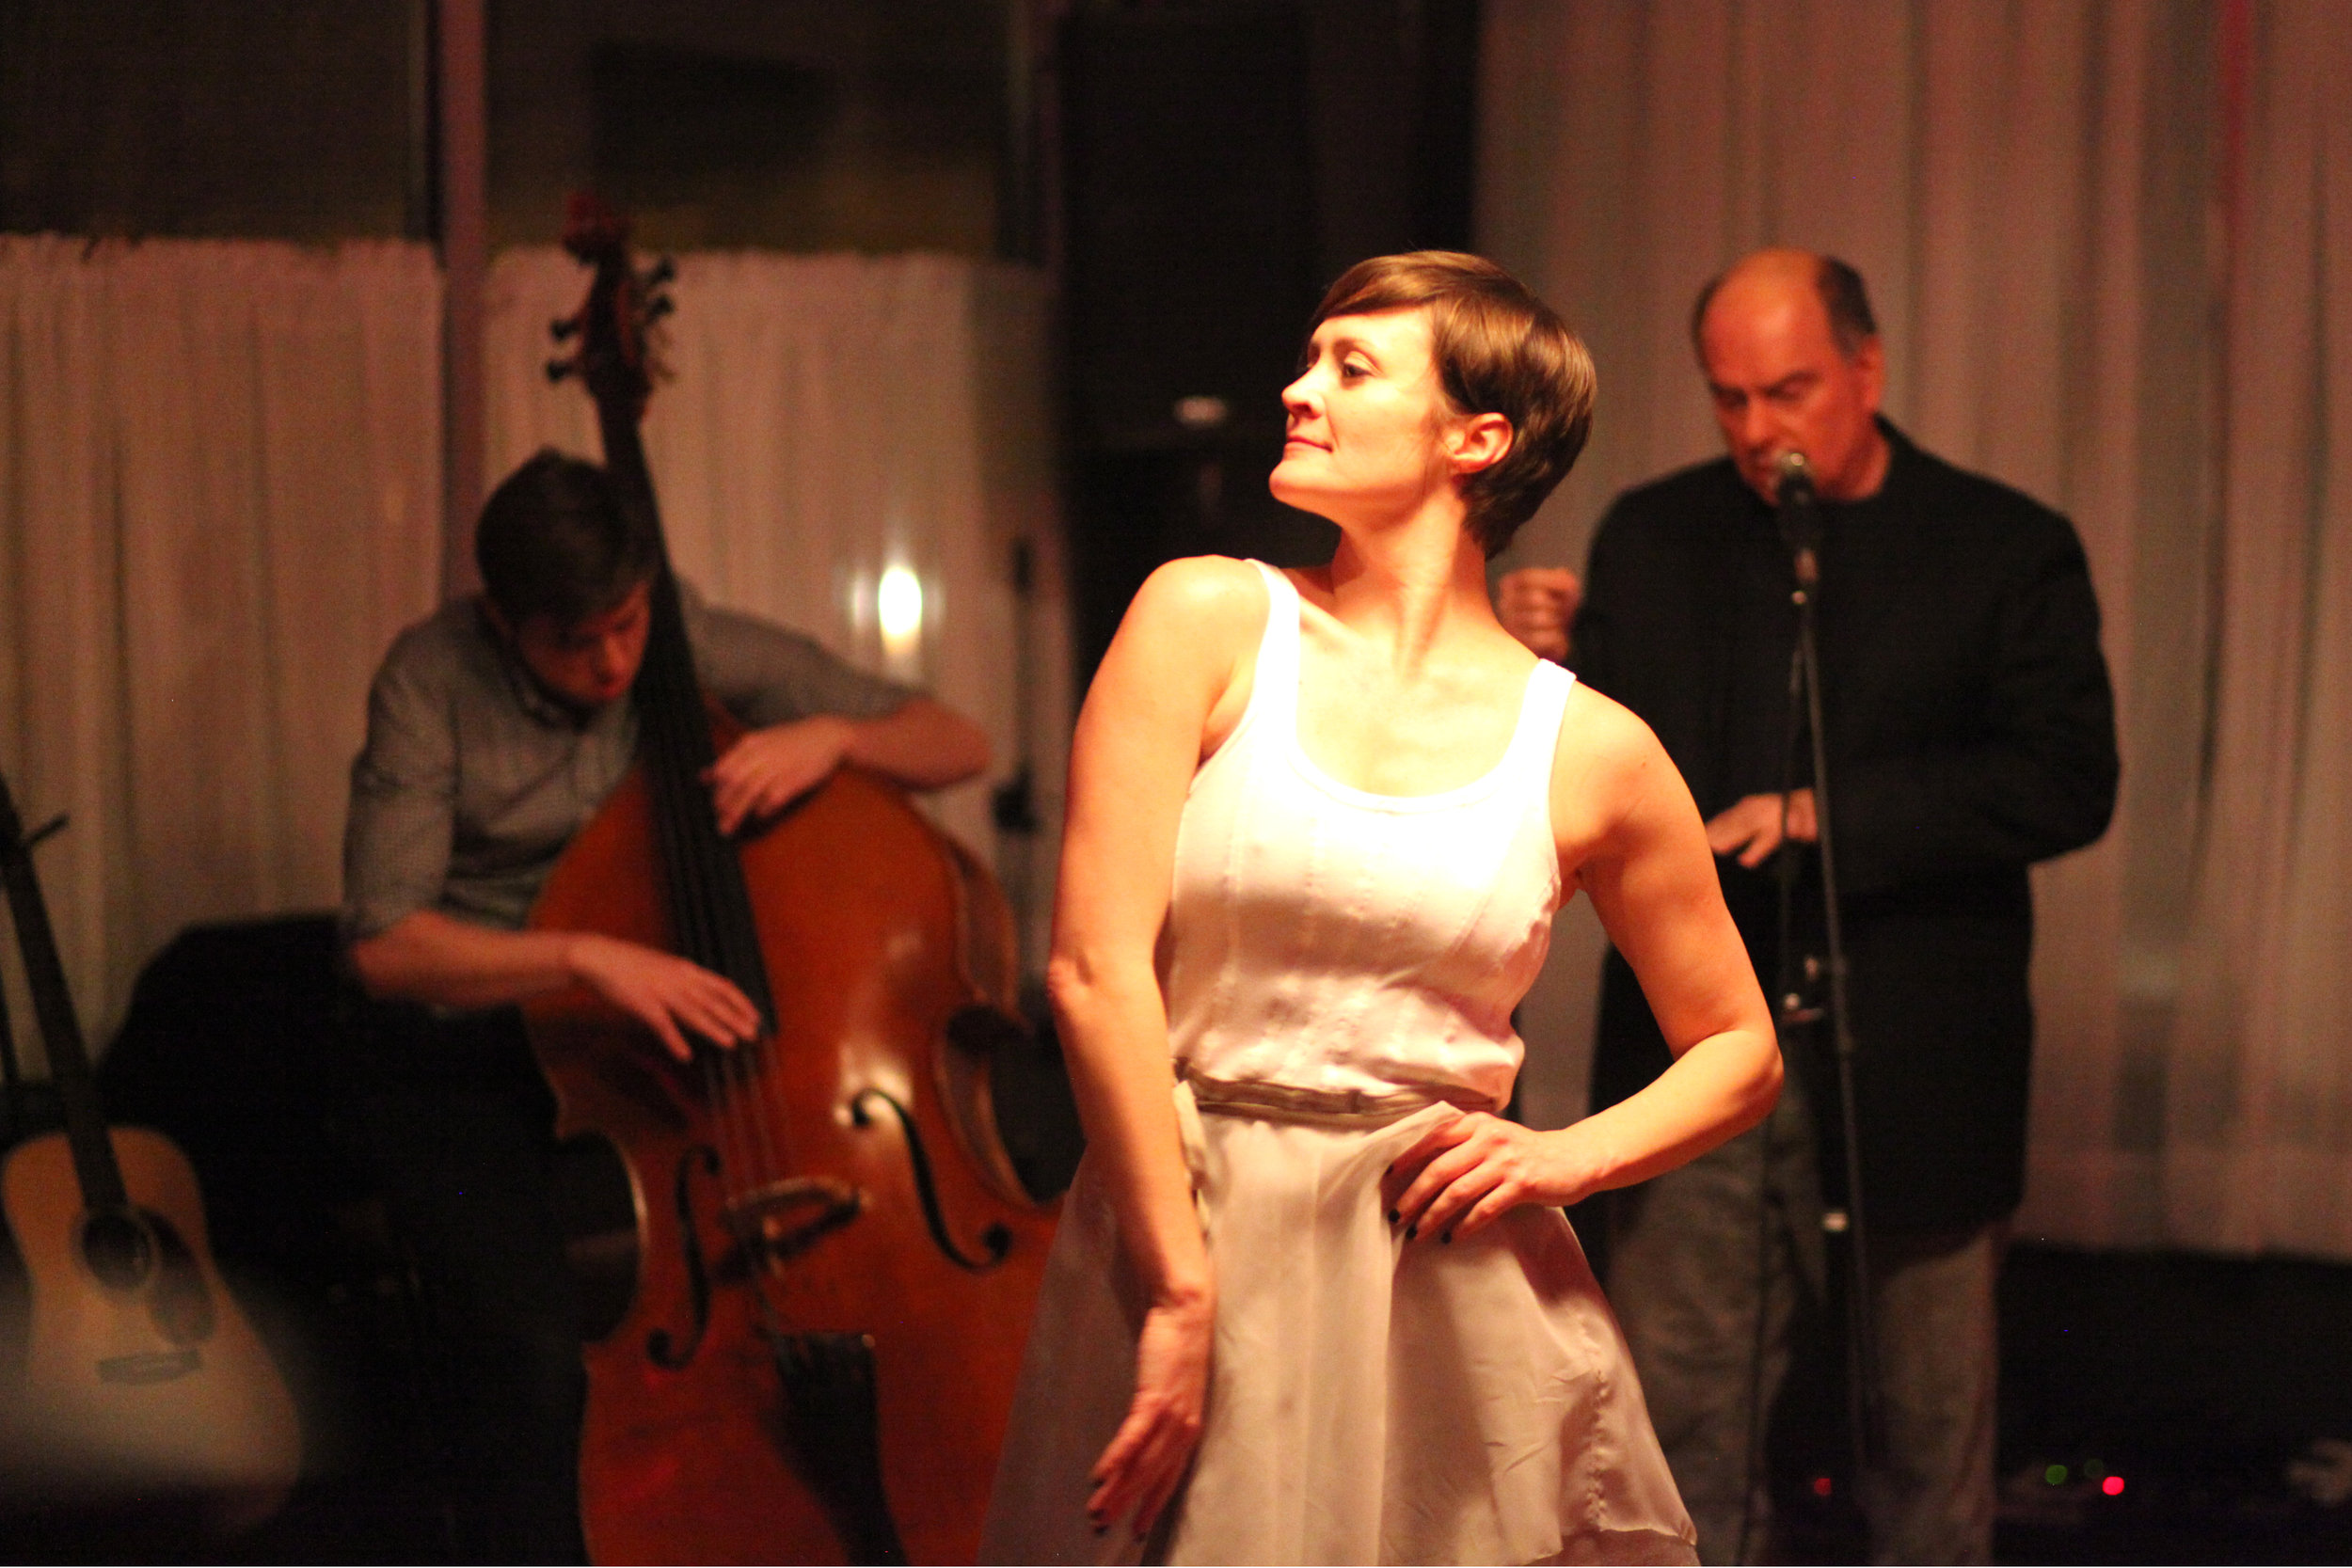 CHANSONS,A WINTER'S NIGHT OF POETRY, MUSIC & DANCE - An intimate evening with artists Dave Caserio, Parker Brown, and Krista Leigh Pasini; melding both solo and trio performances in music, dance, and poetry.Harper & Madison 2017